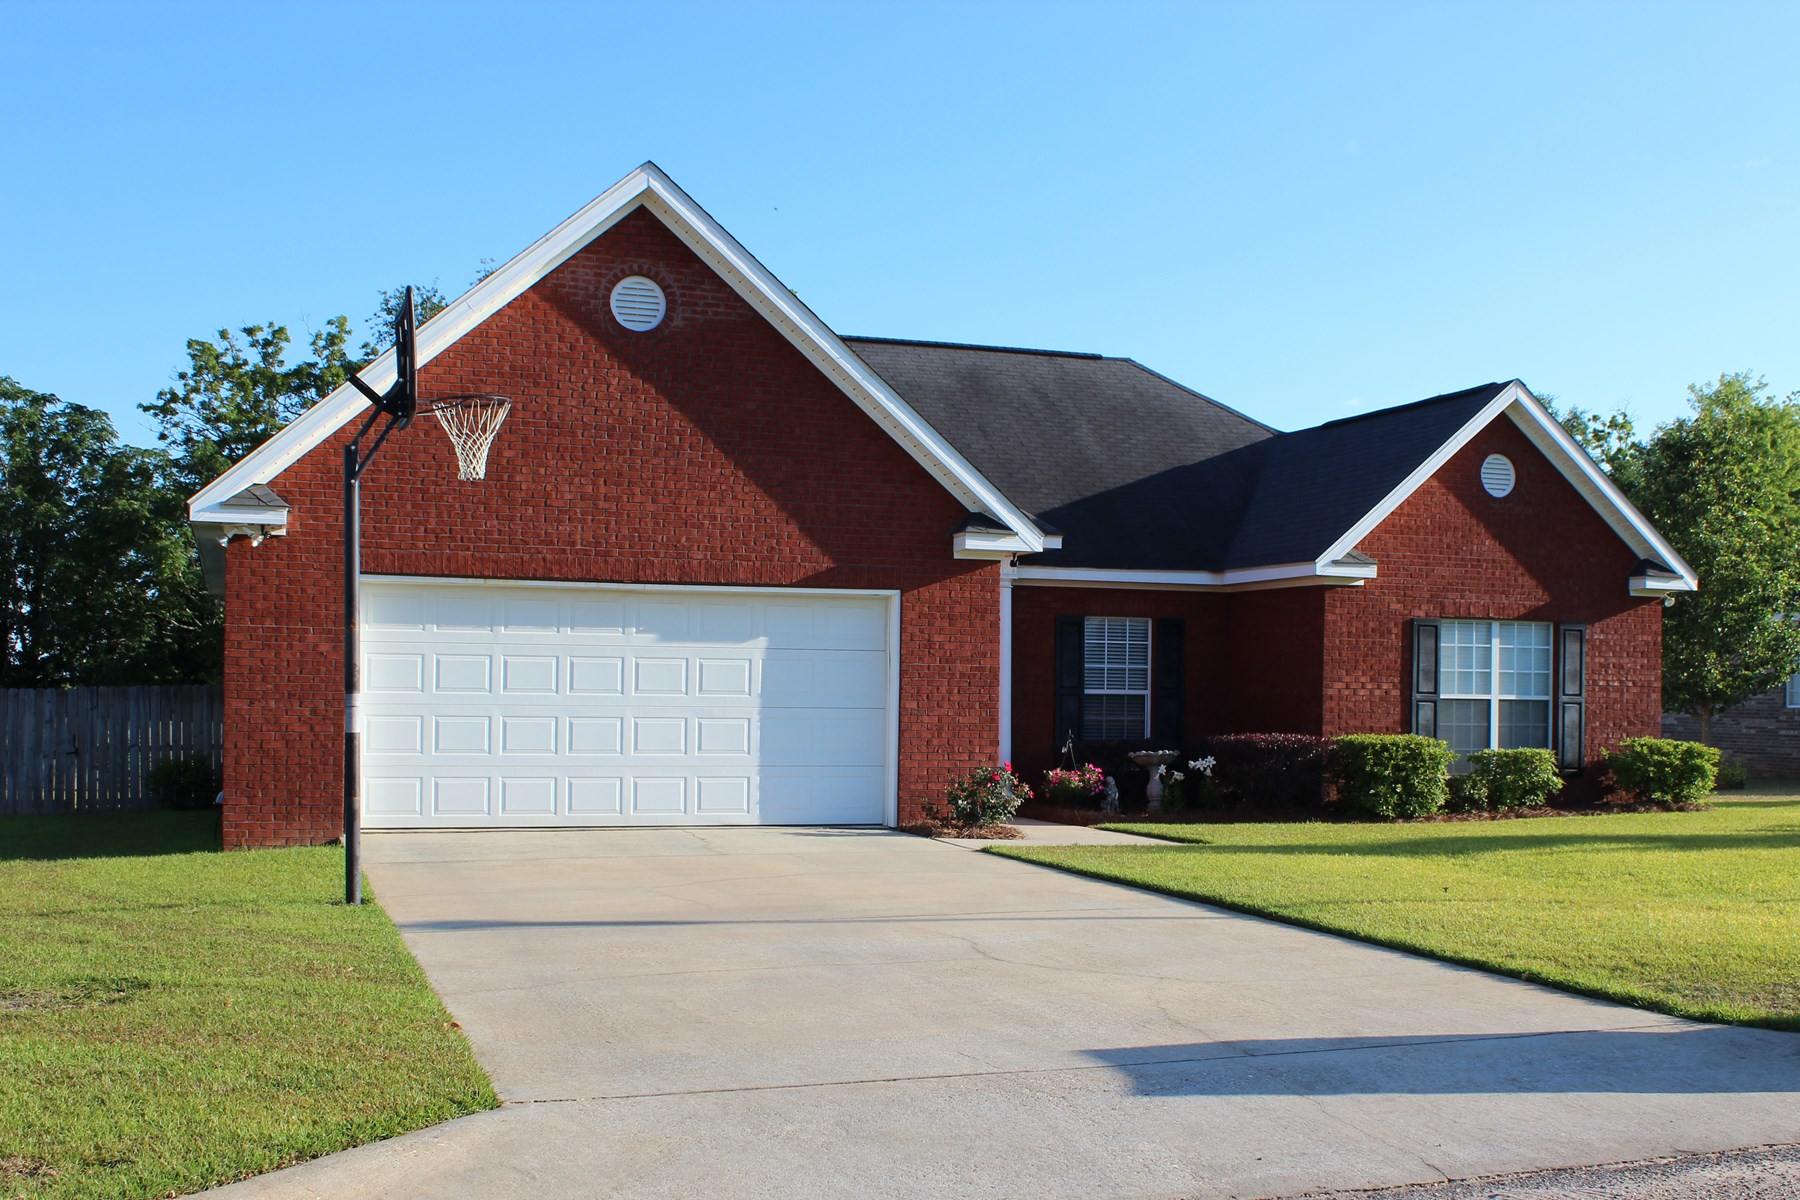 Country Home For Sale In Dothan, Alabama